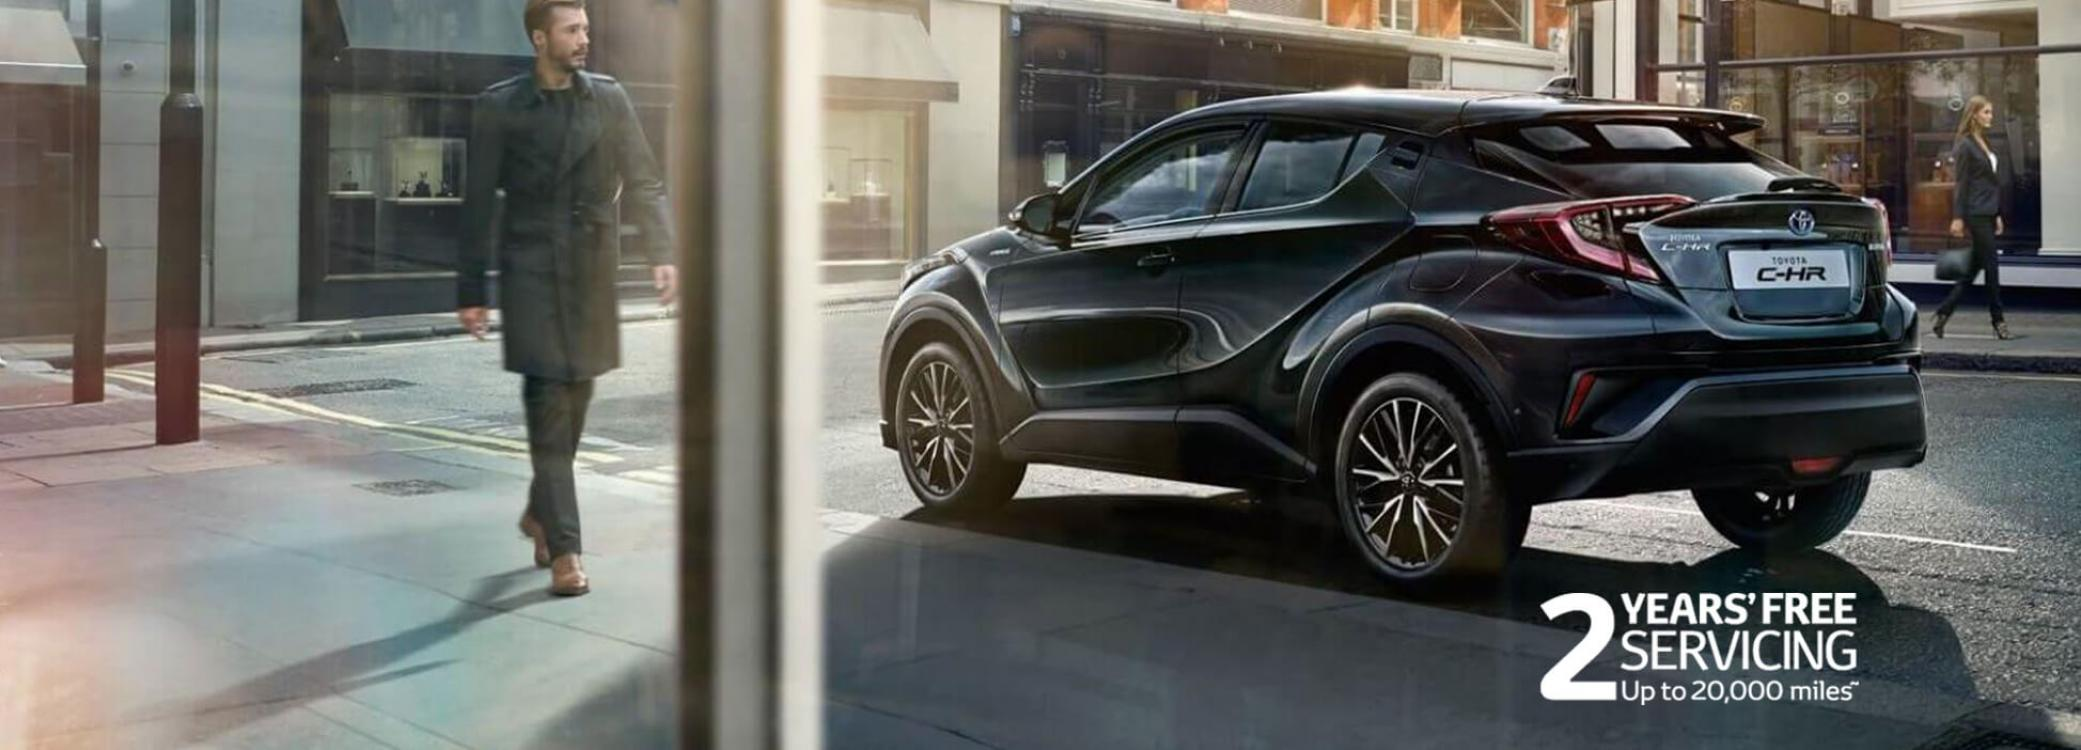 All New Toyota C-HR Hybrid models & features | Burrows (Barnsley)